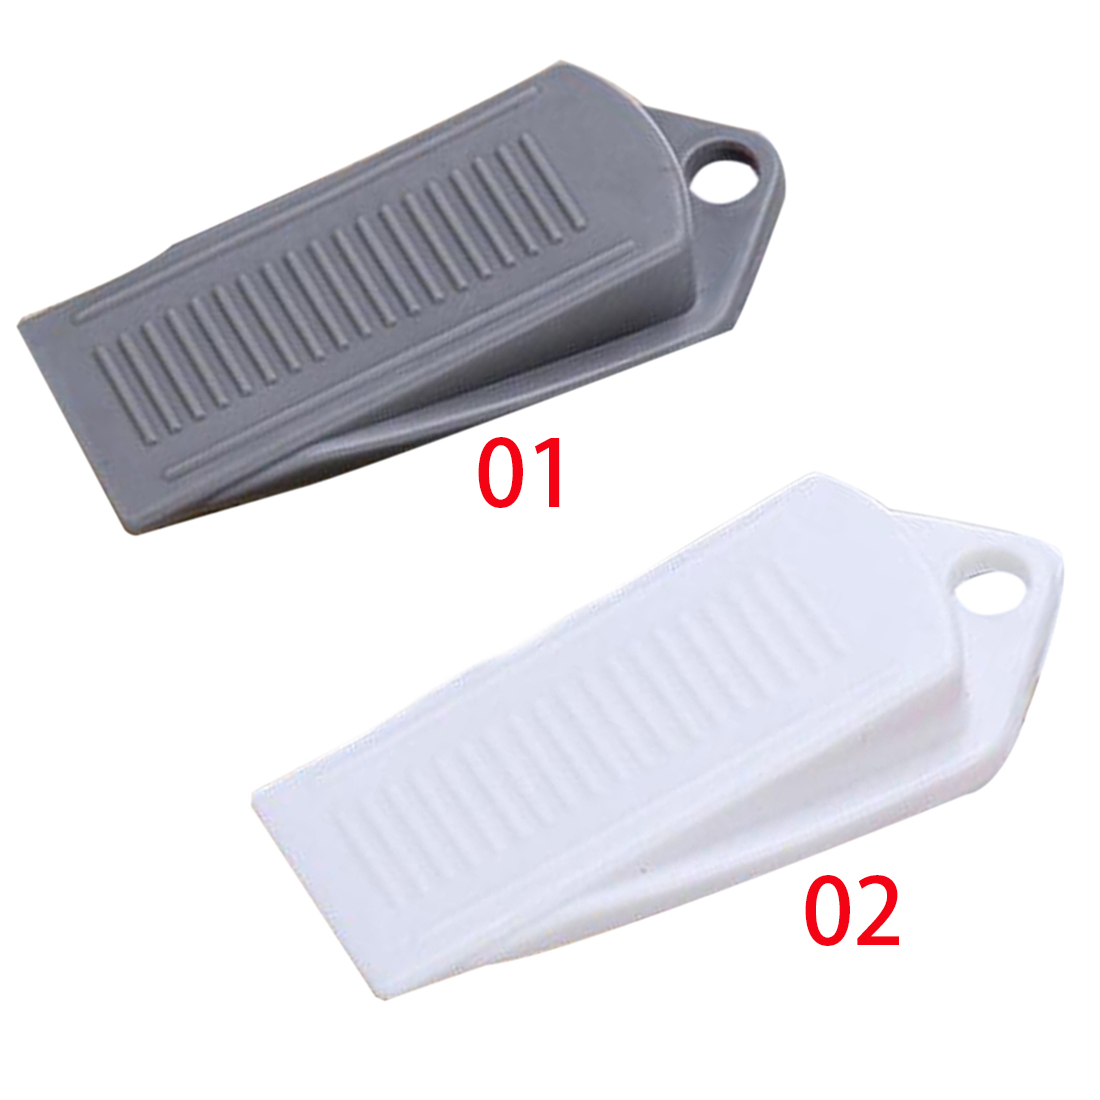 white/grey Soft Stopper For Kids Baby Safe Door Room Gate Security Door Stopper Protecting Decorative Door Stopwhite/grey Soft Stopper For Kids Baby Safe Door Room Gate Security Door Stopper Protecting Decorative Door Stop